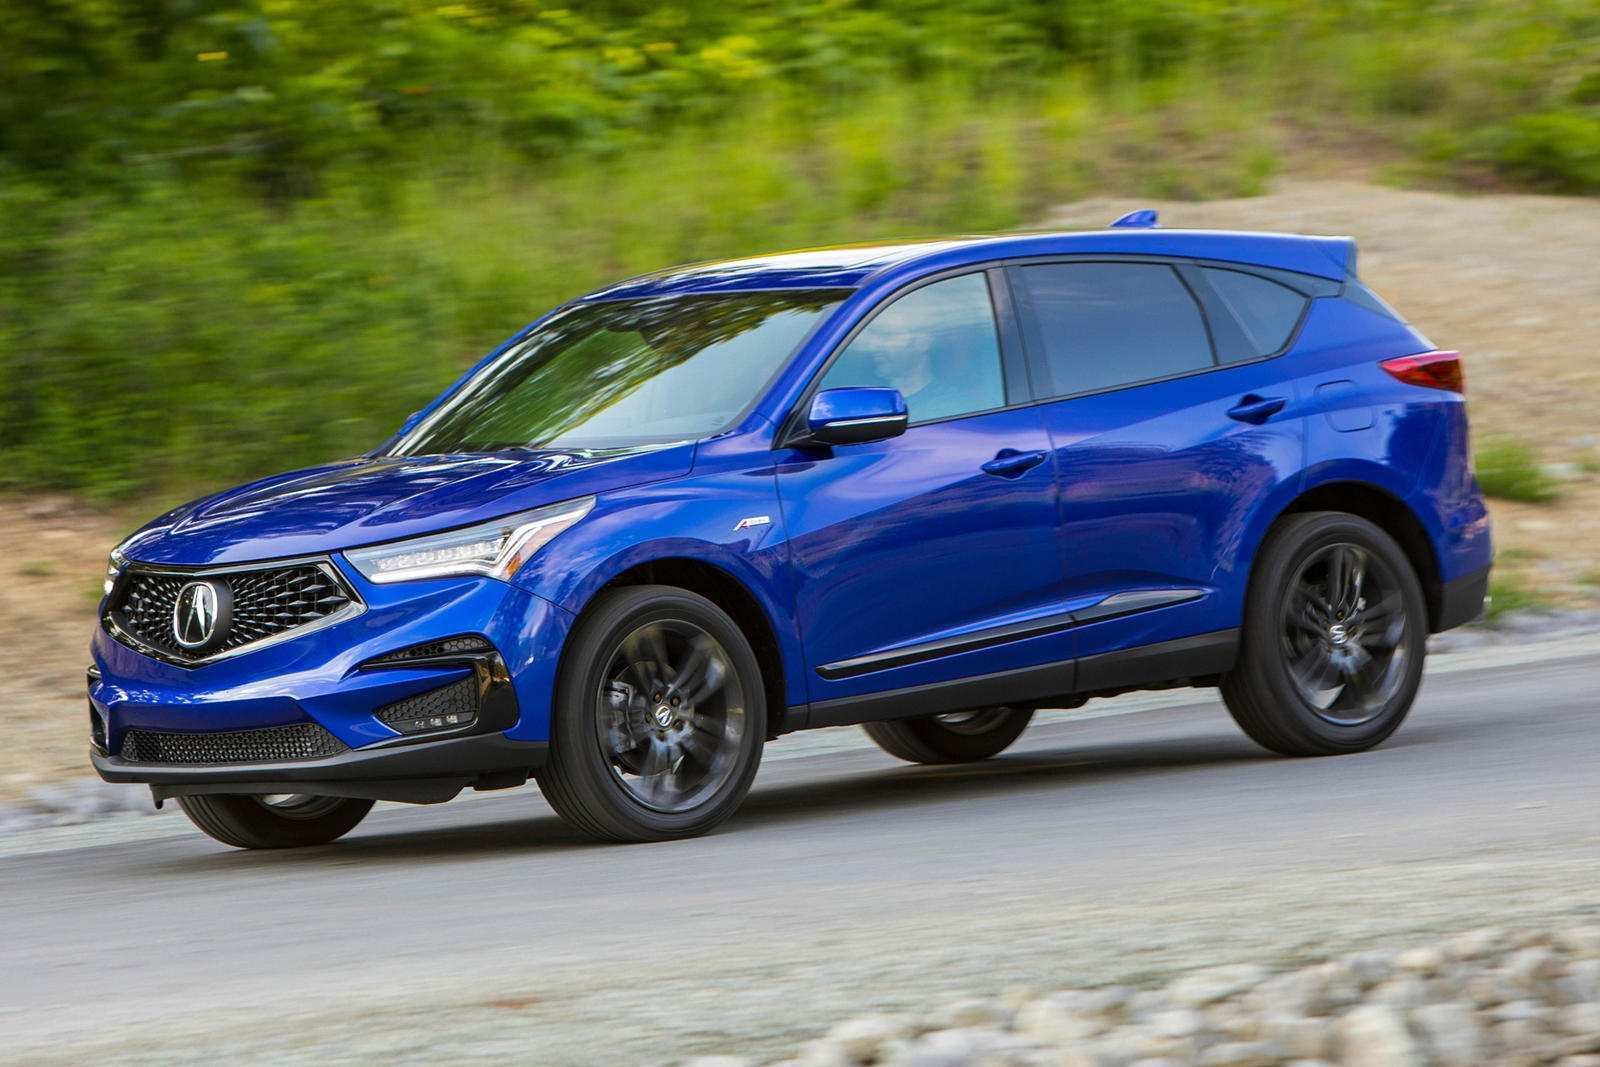 83 Best Review New Acura Rdx 2019 Exterior Colors Spy Shoot Concept for New Acura Rdx 2019 Exterior Colors Spy Shoot